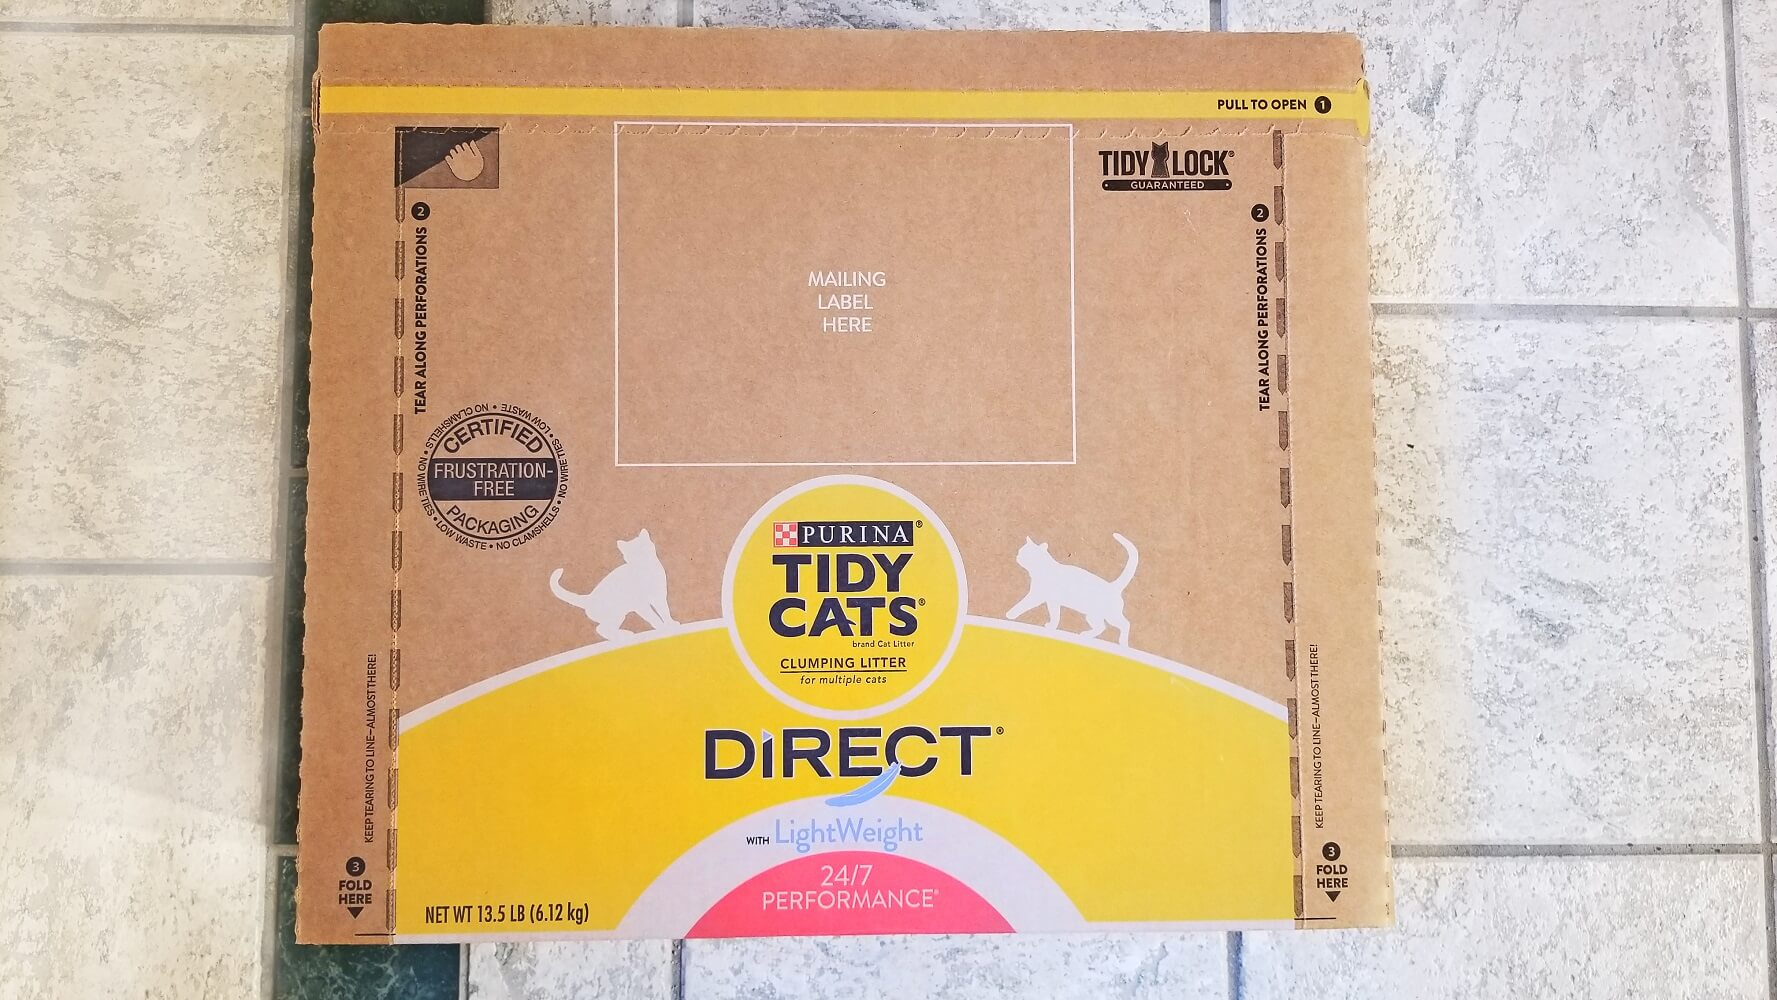 Tidy Cats Direct Disposable Litter Box Review: We Tried a Cardboard Litter Box